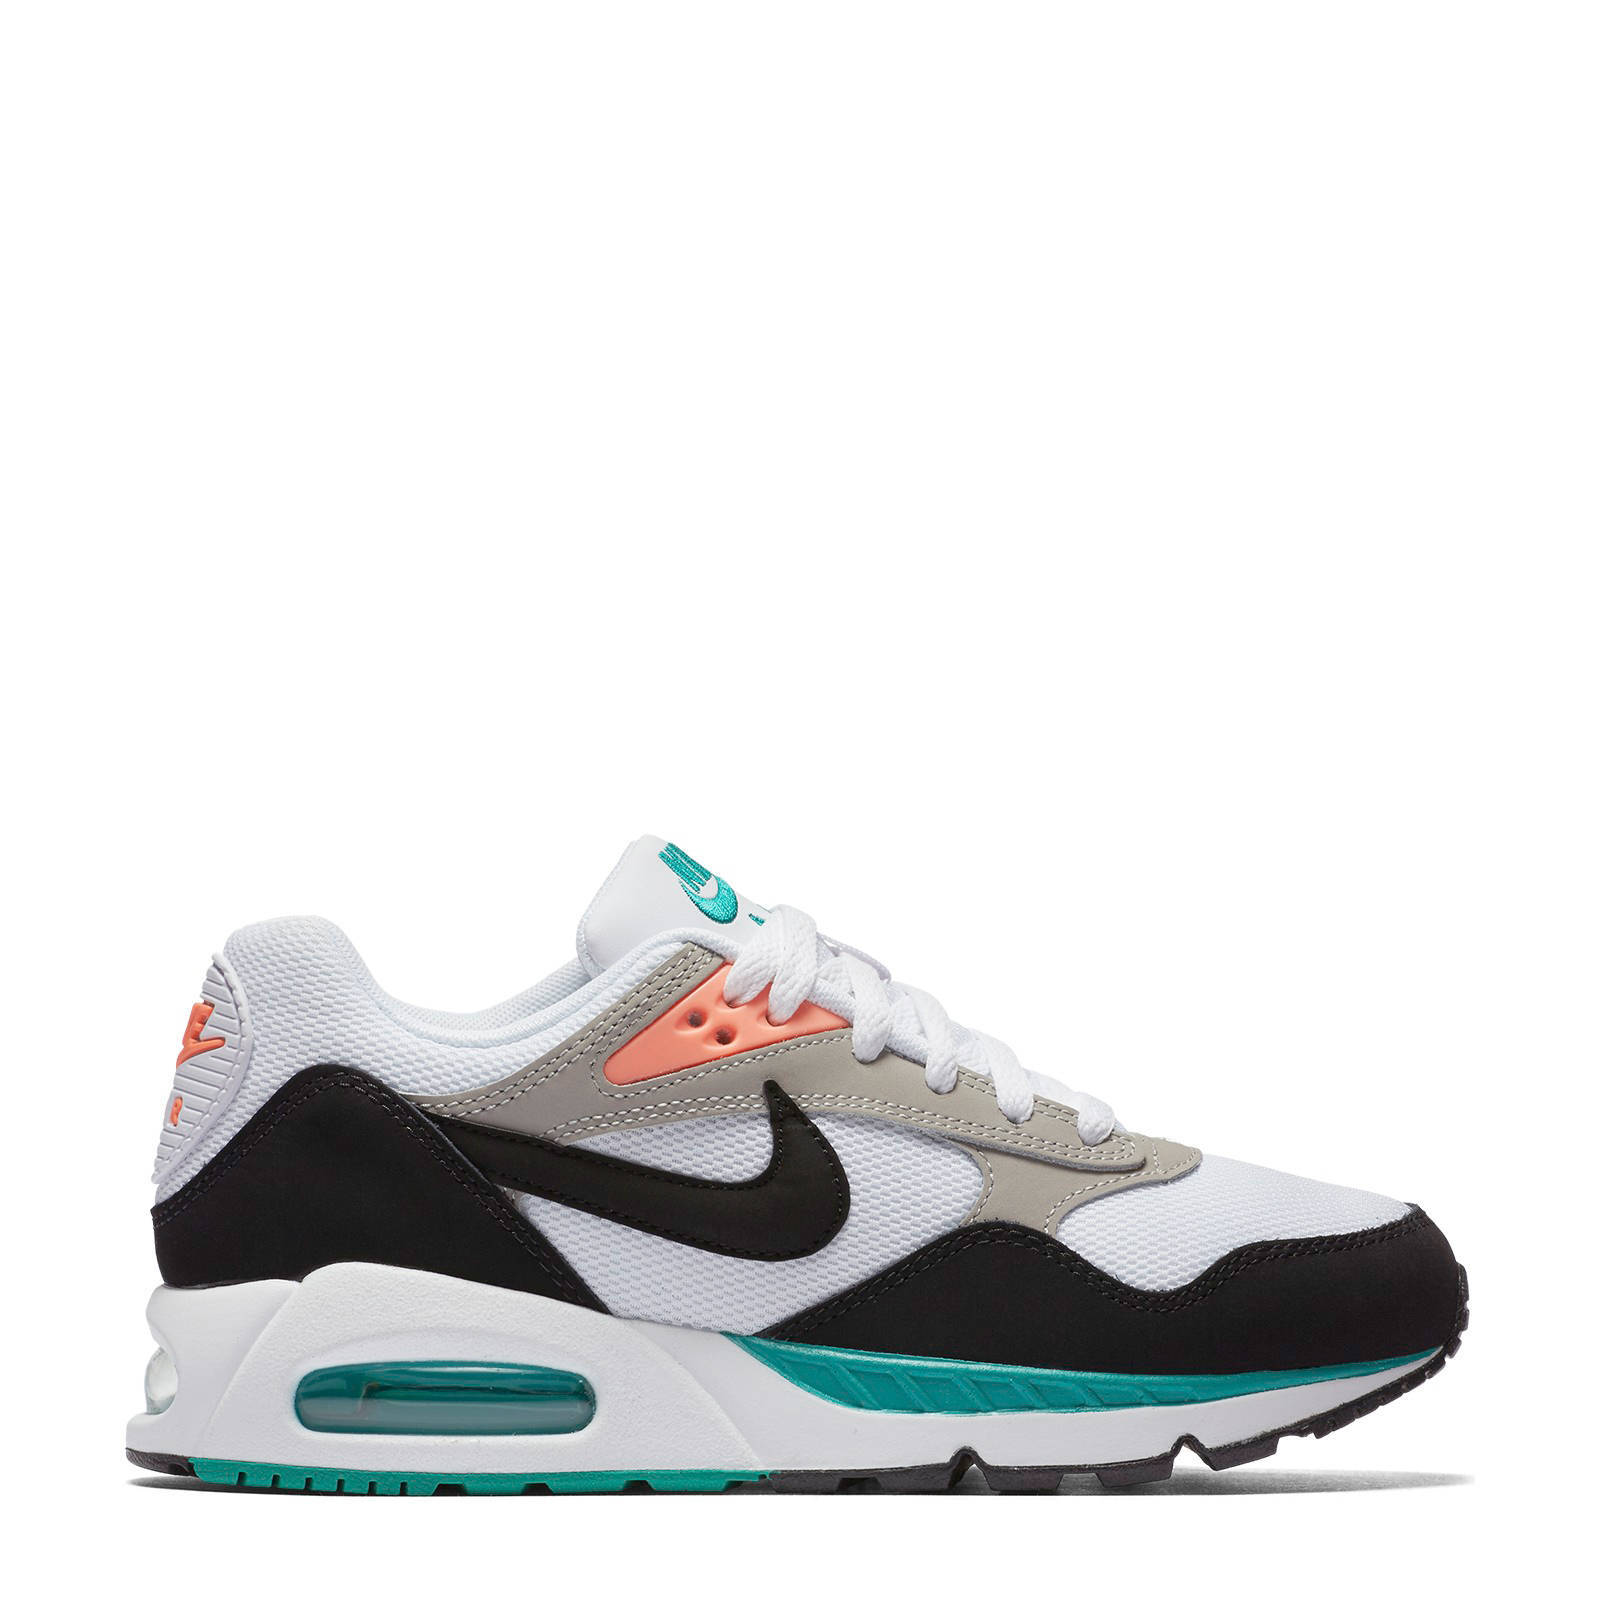 nike air max wit groen